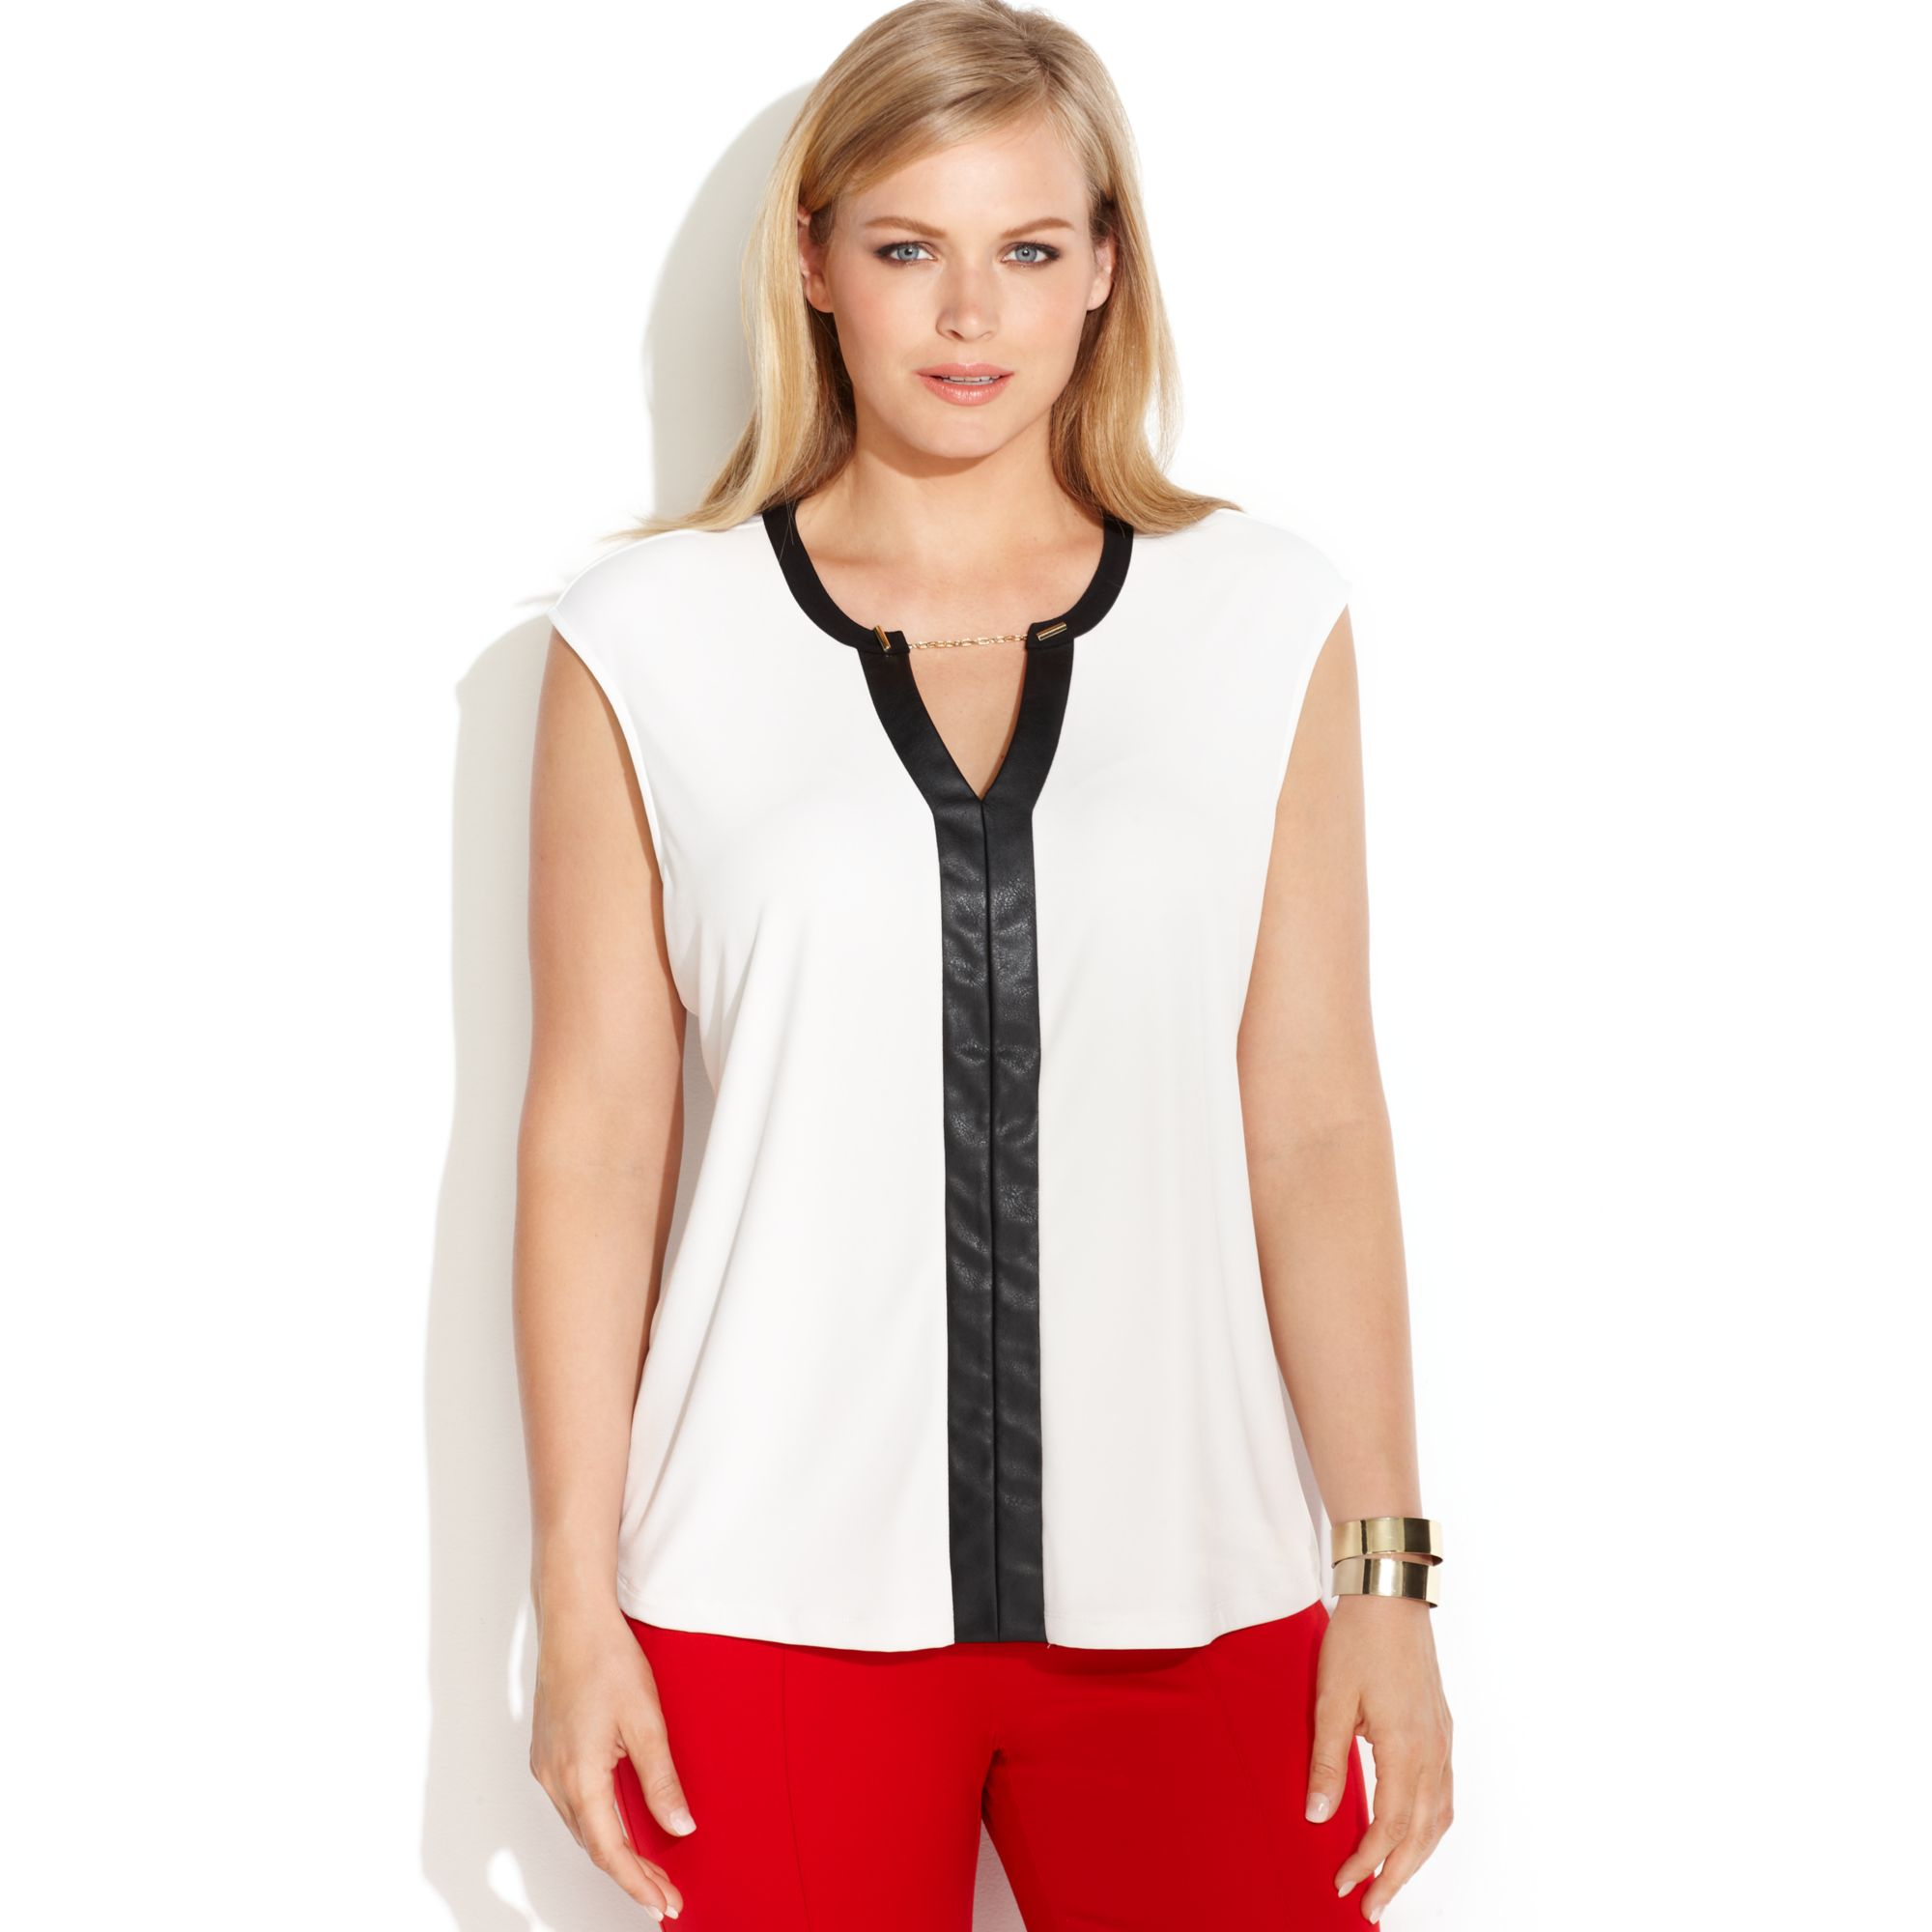 53ec98aeed1 Lyst - Calvin Klein Plus Size Faux Leather Trim Sleevless Blouse in ...